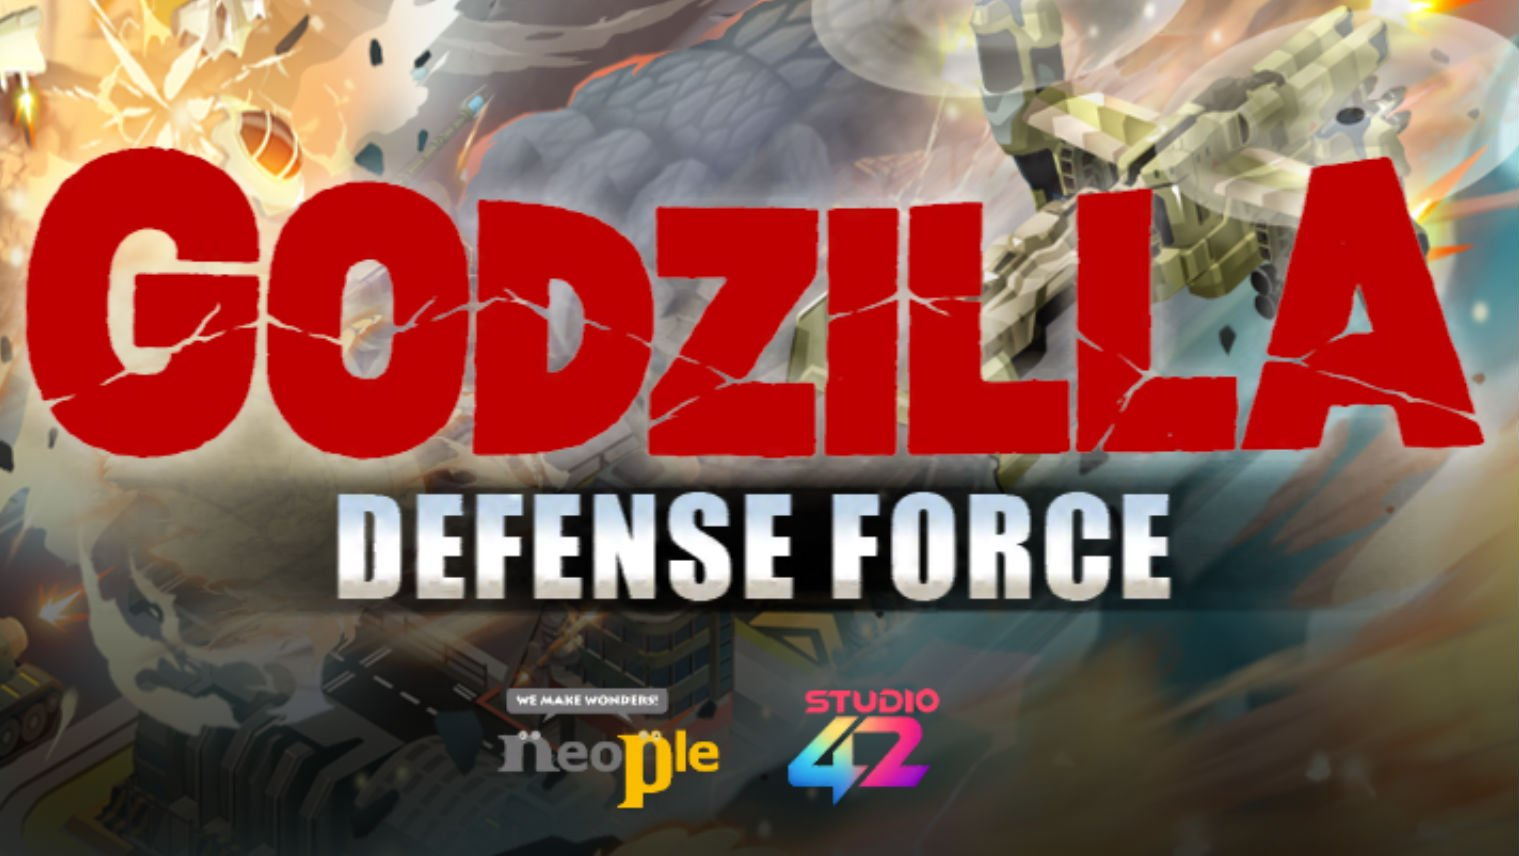 'Godzilla Defense Force' Guide: Tips, Tricks and Hints to Kick Kaiju Butt for Free